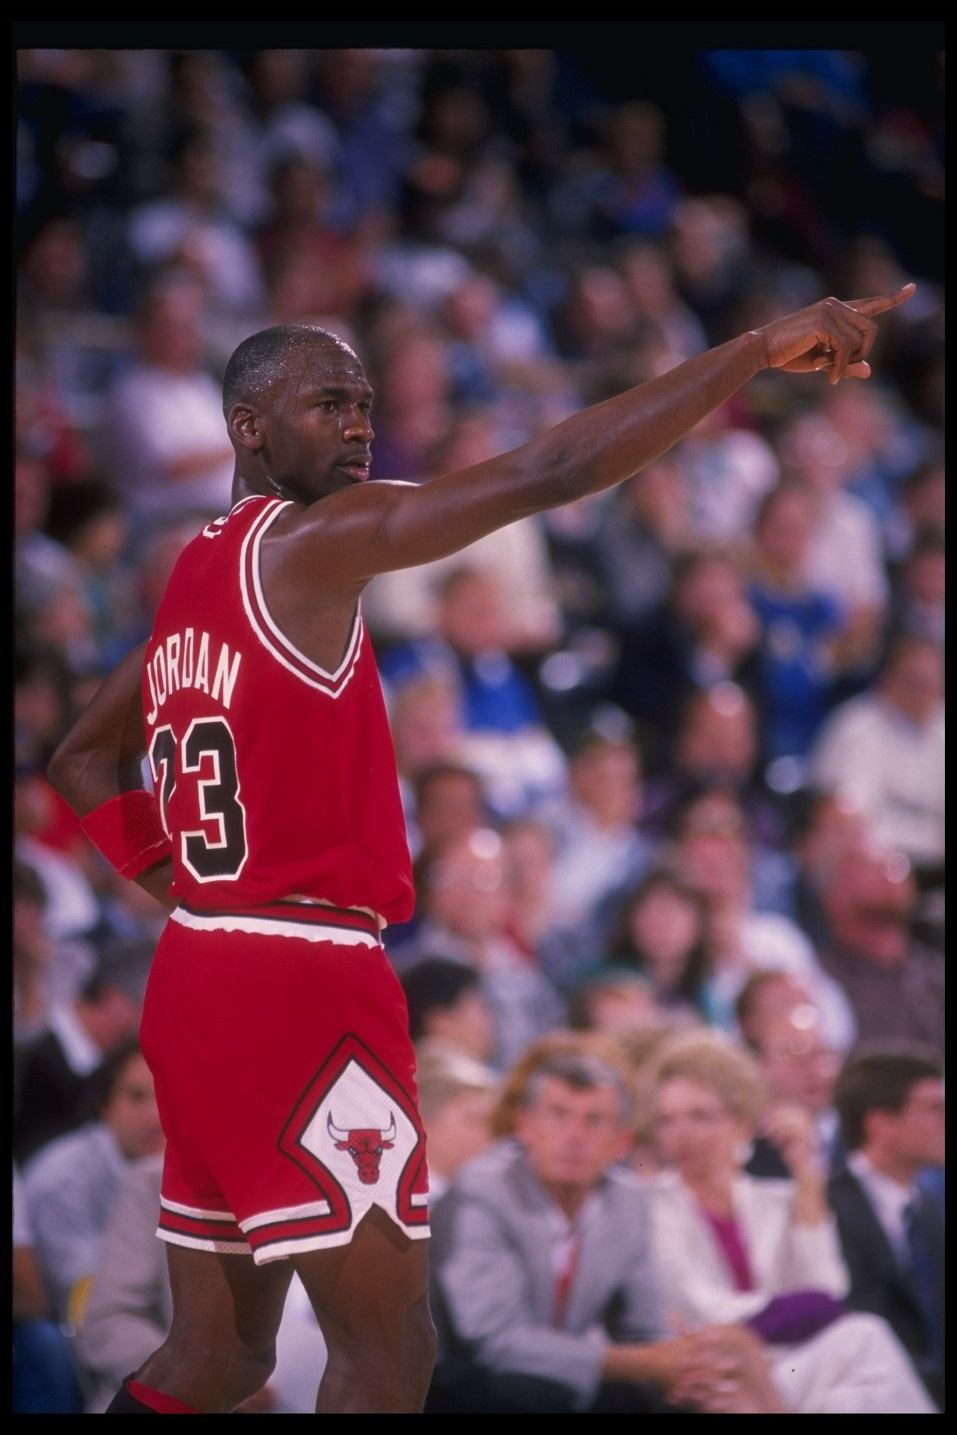 Michael Jordan points during a game.